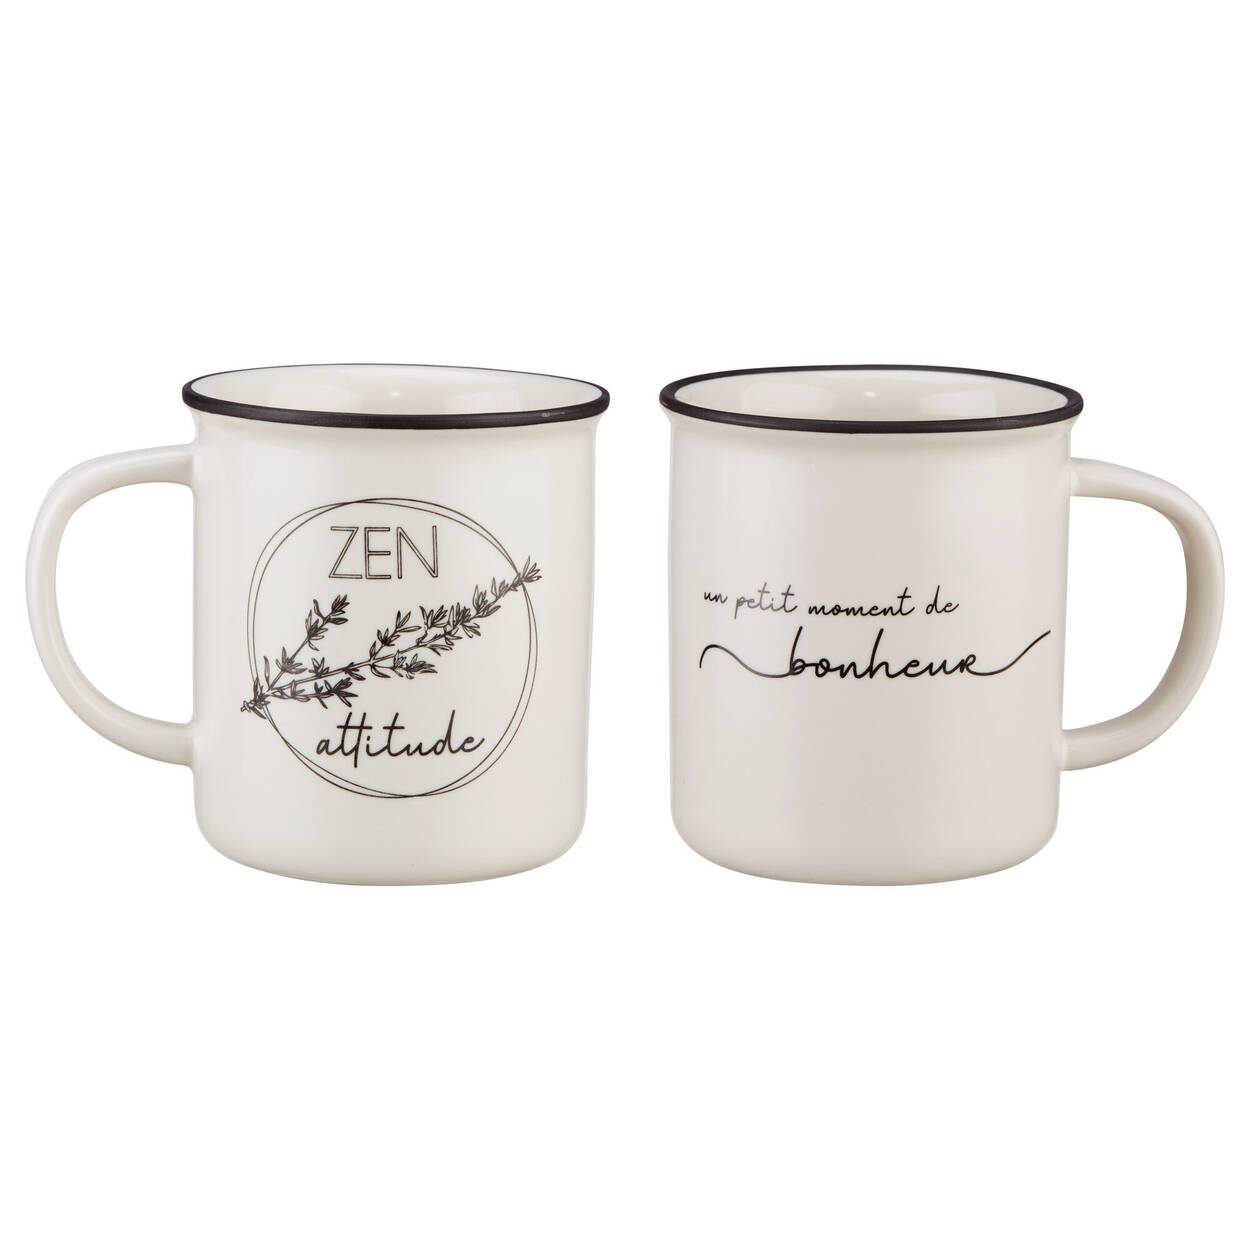 Set of 2 Mugs with Herbs